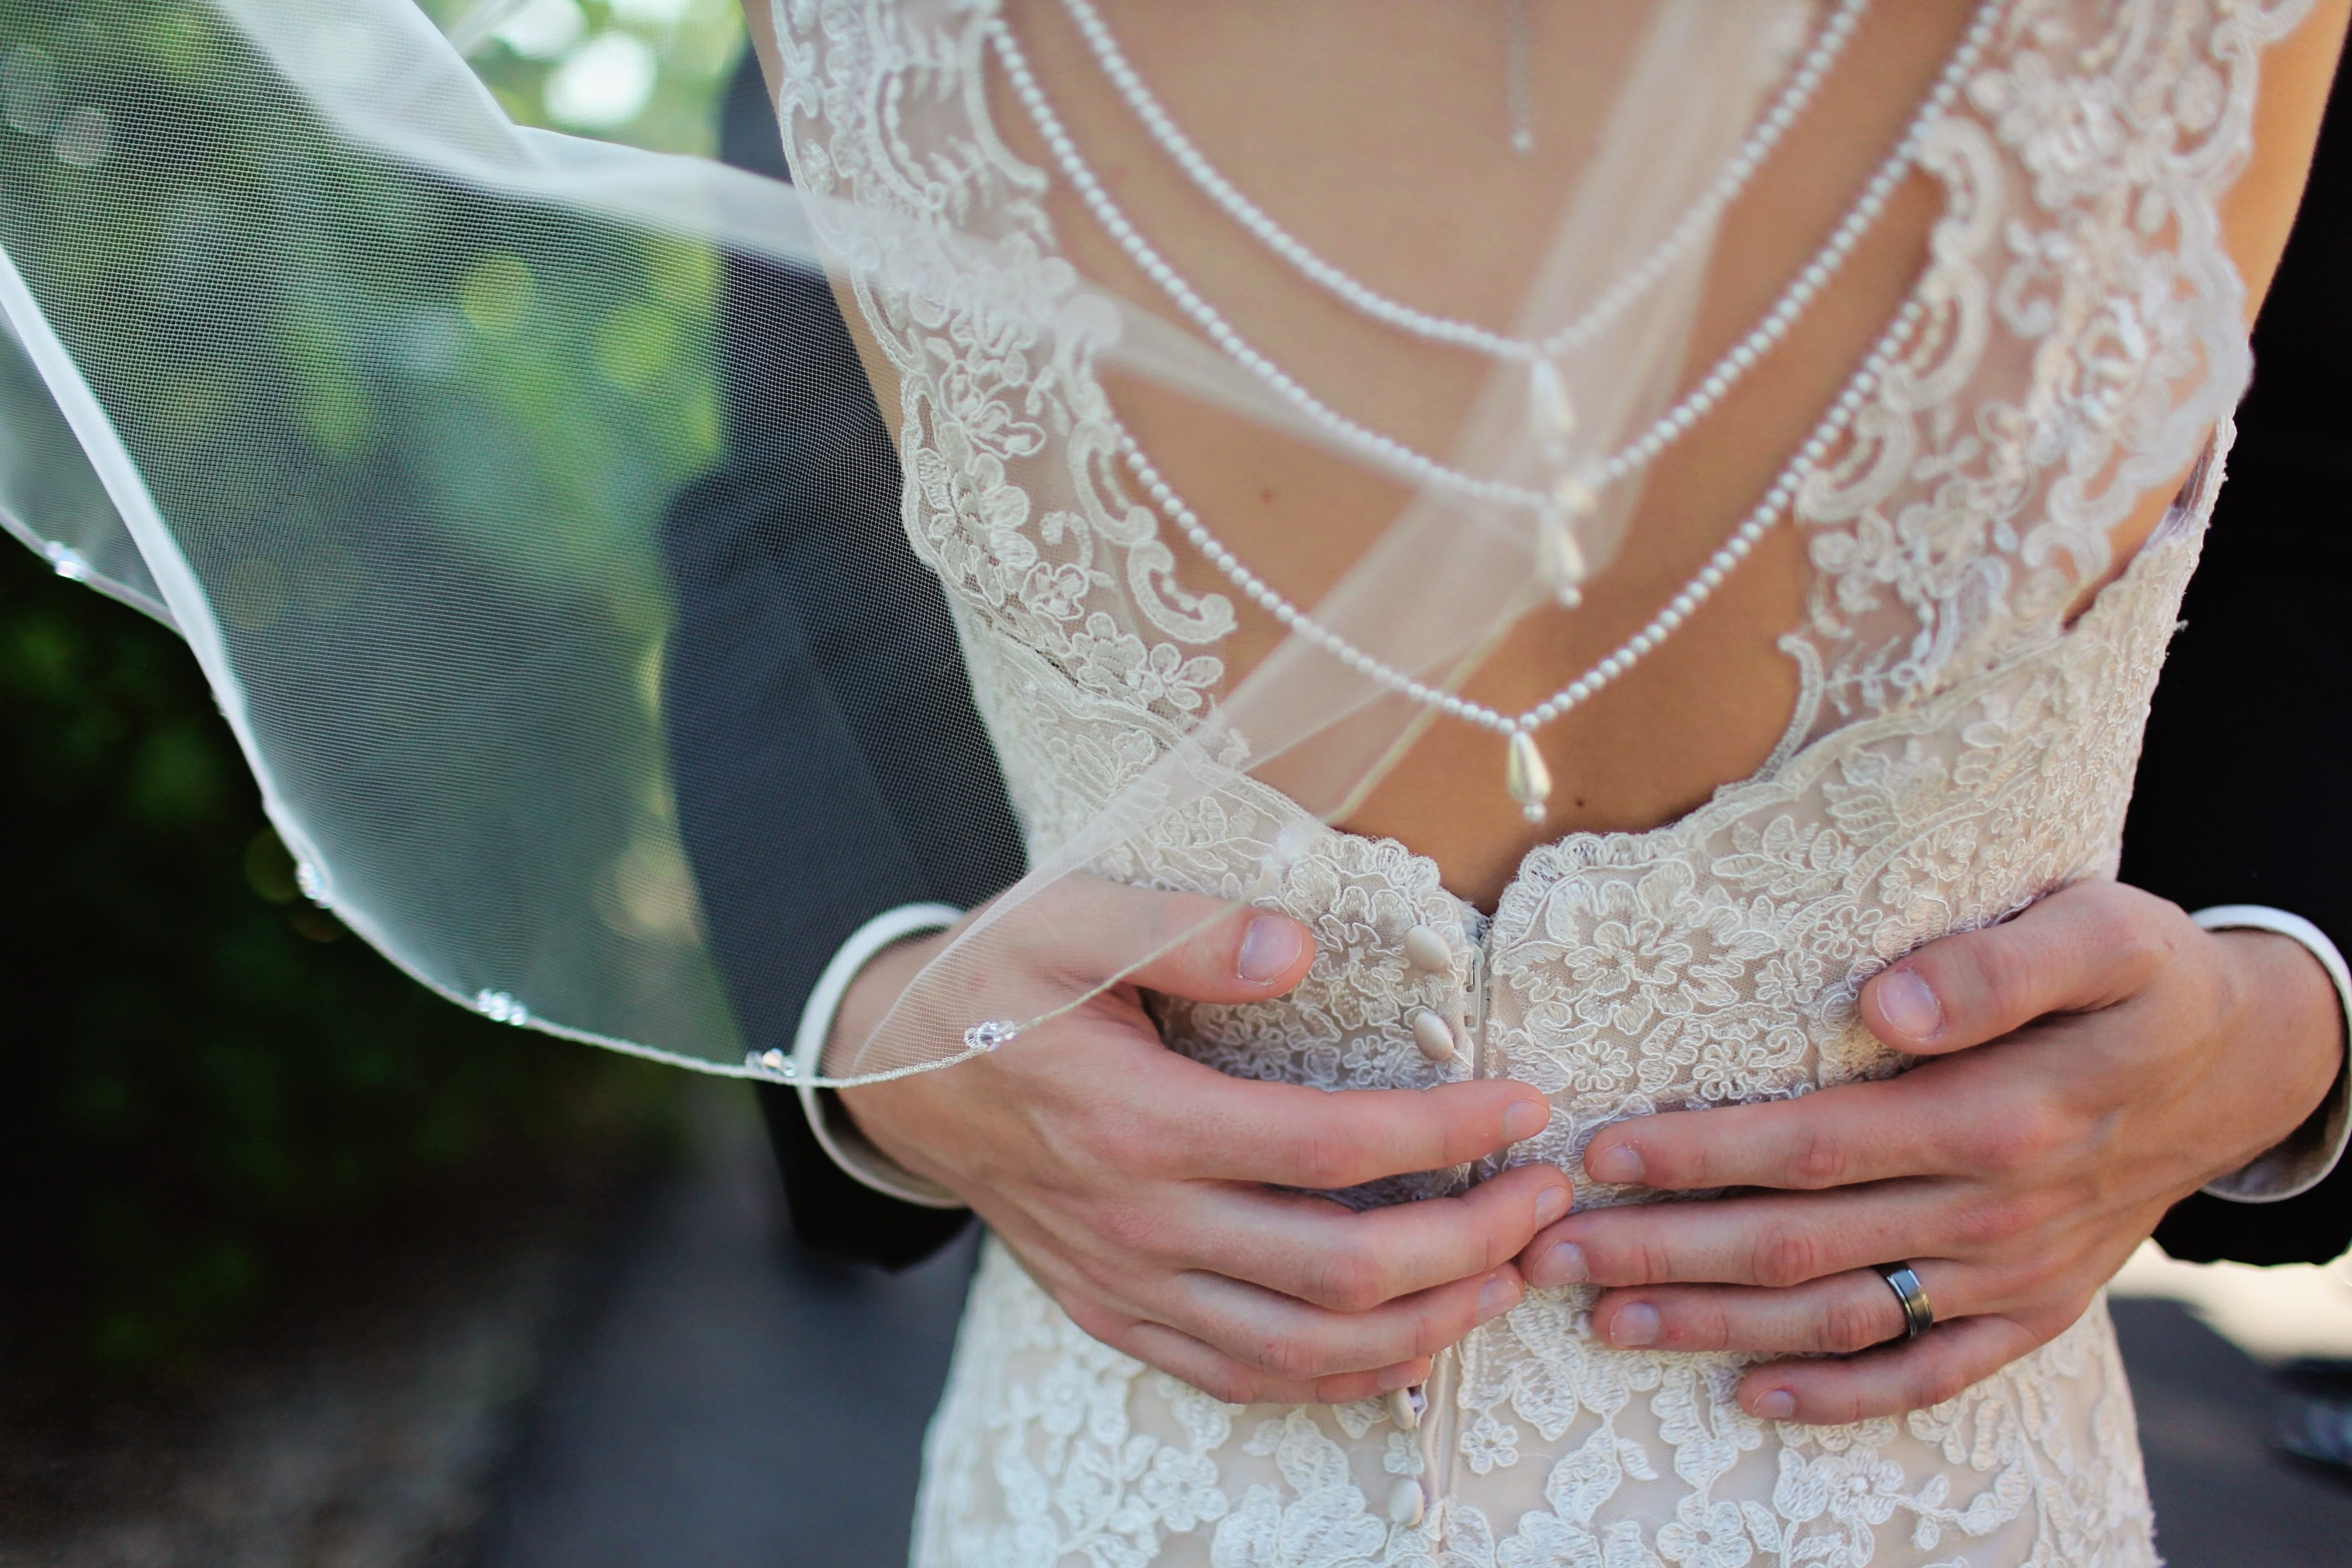 Woman Wearing Beige Bridal Gown during Day Time, Beaded, Lace, Woman, Wedding, HQ Photo